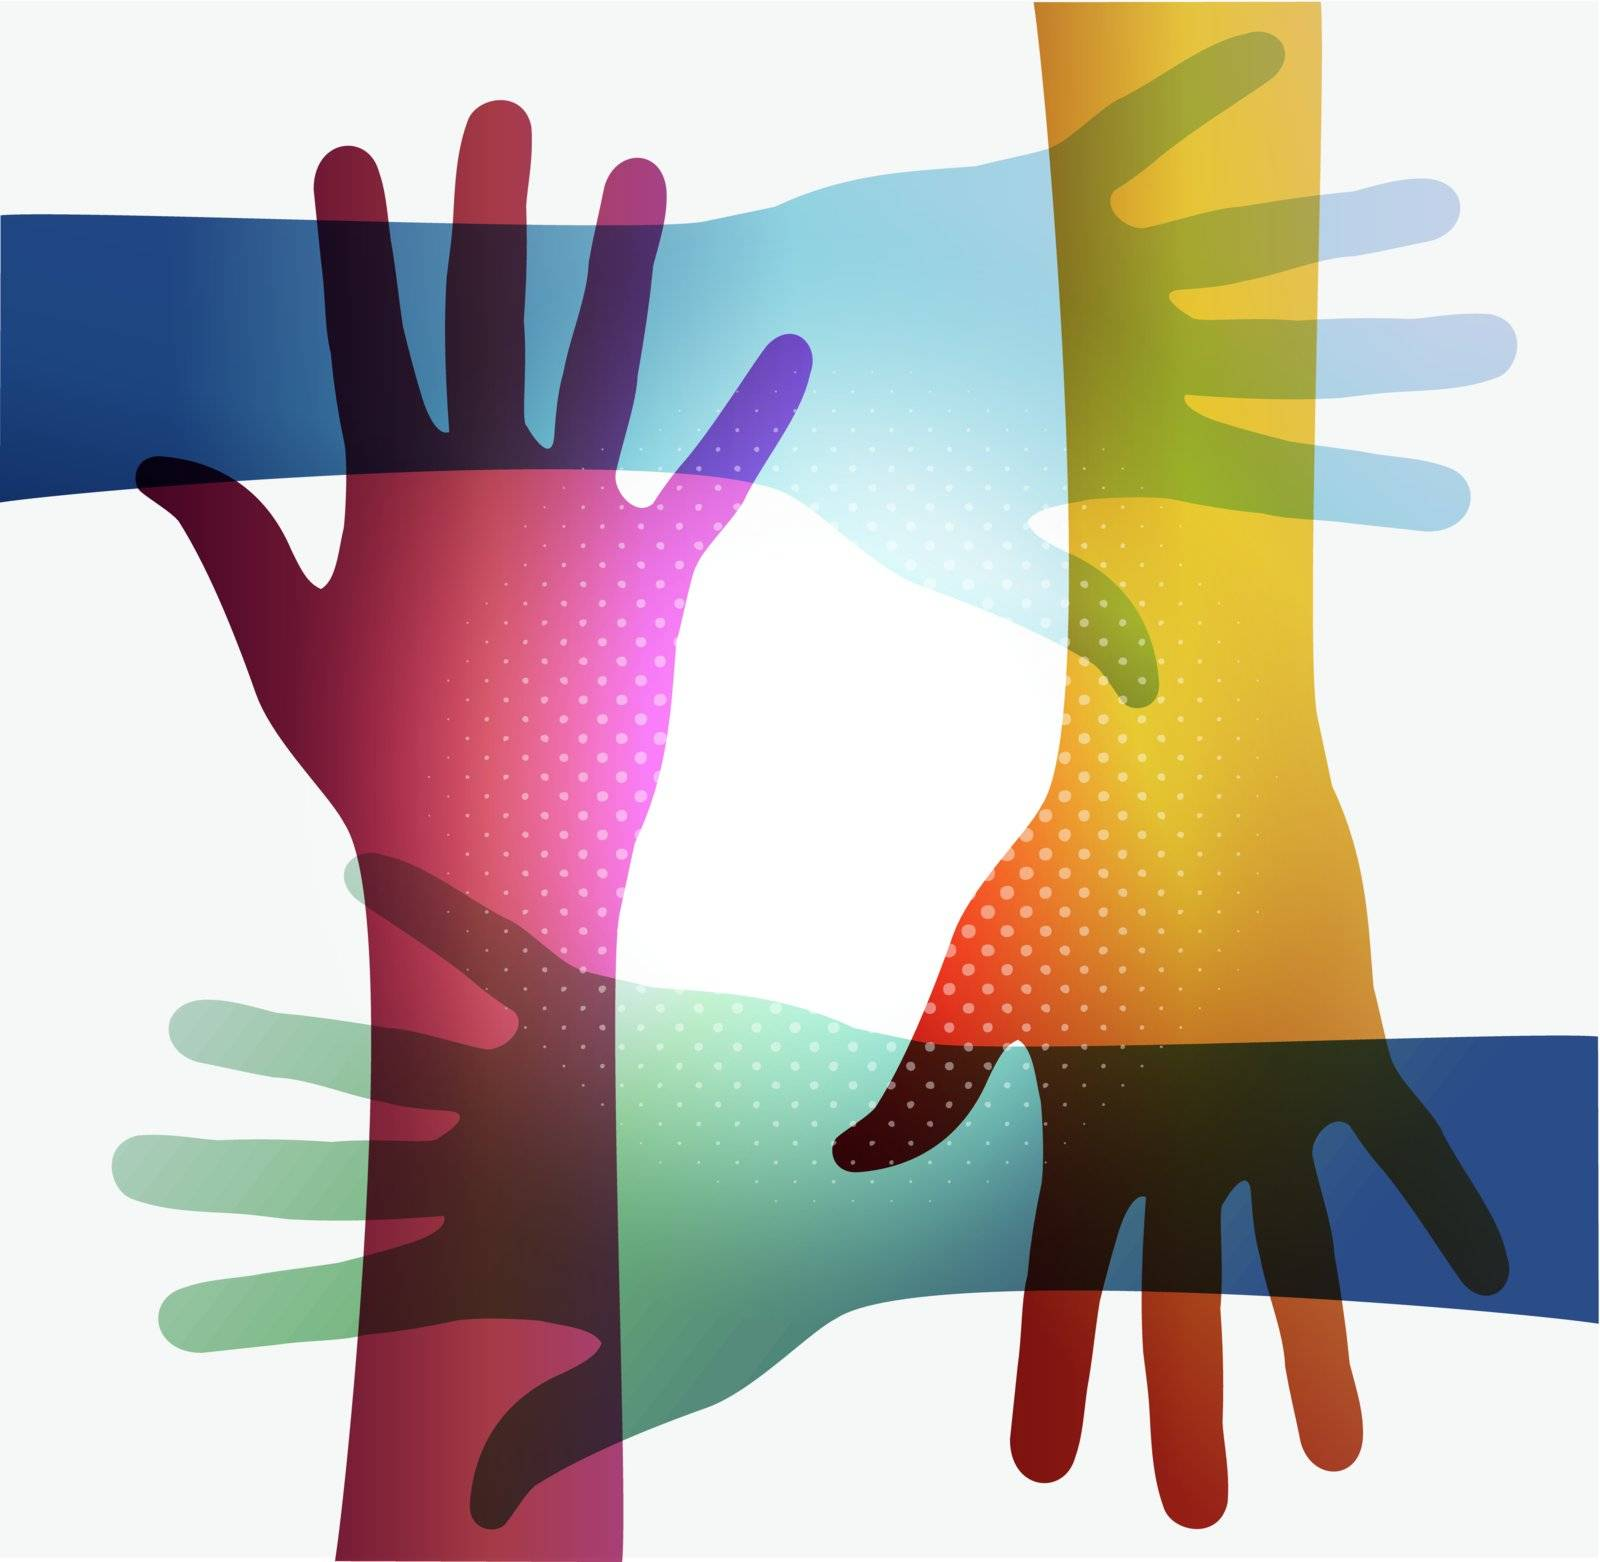 Diversity transparent hands on white background. EPS 10 vector illustration, cleanly built grouped and ordered in layers for easy editing.